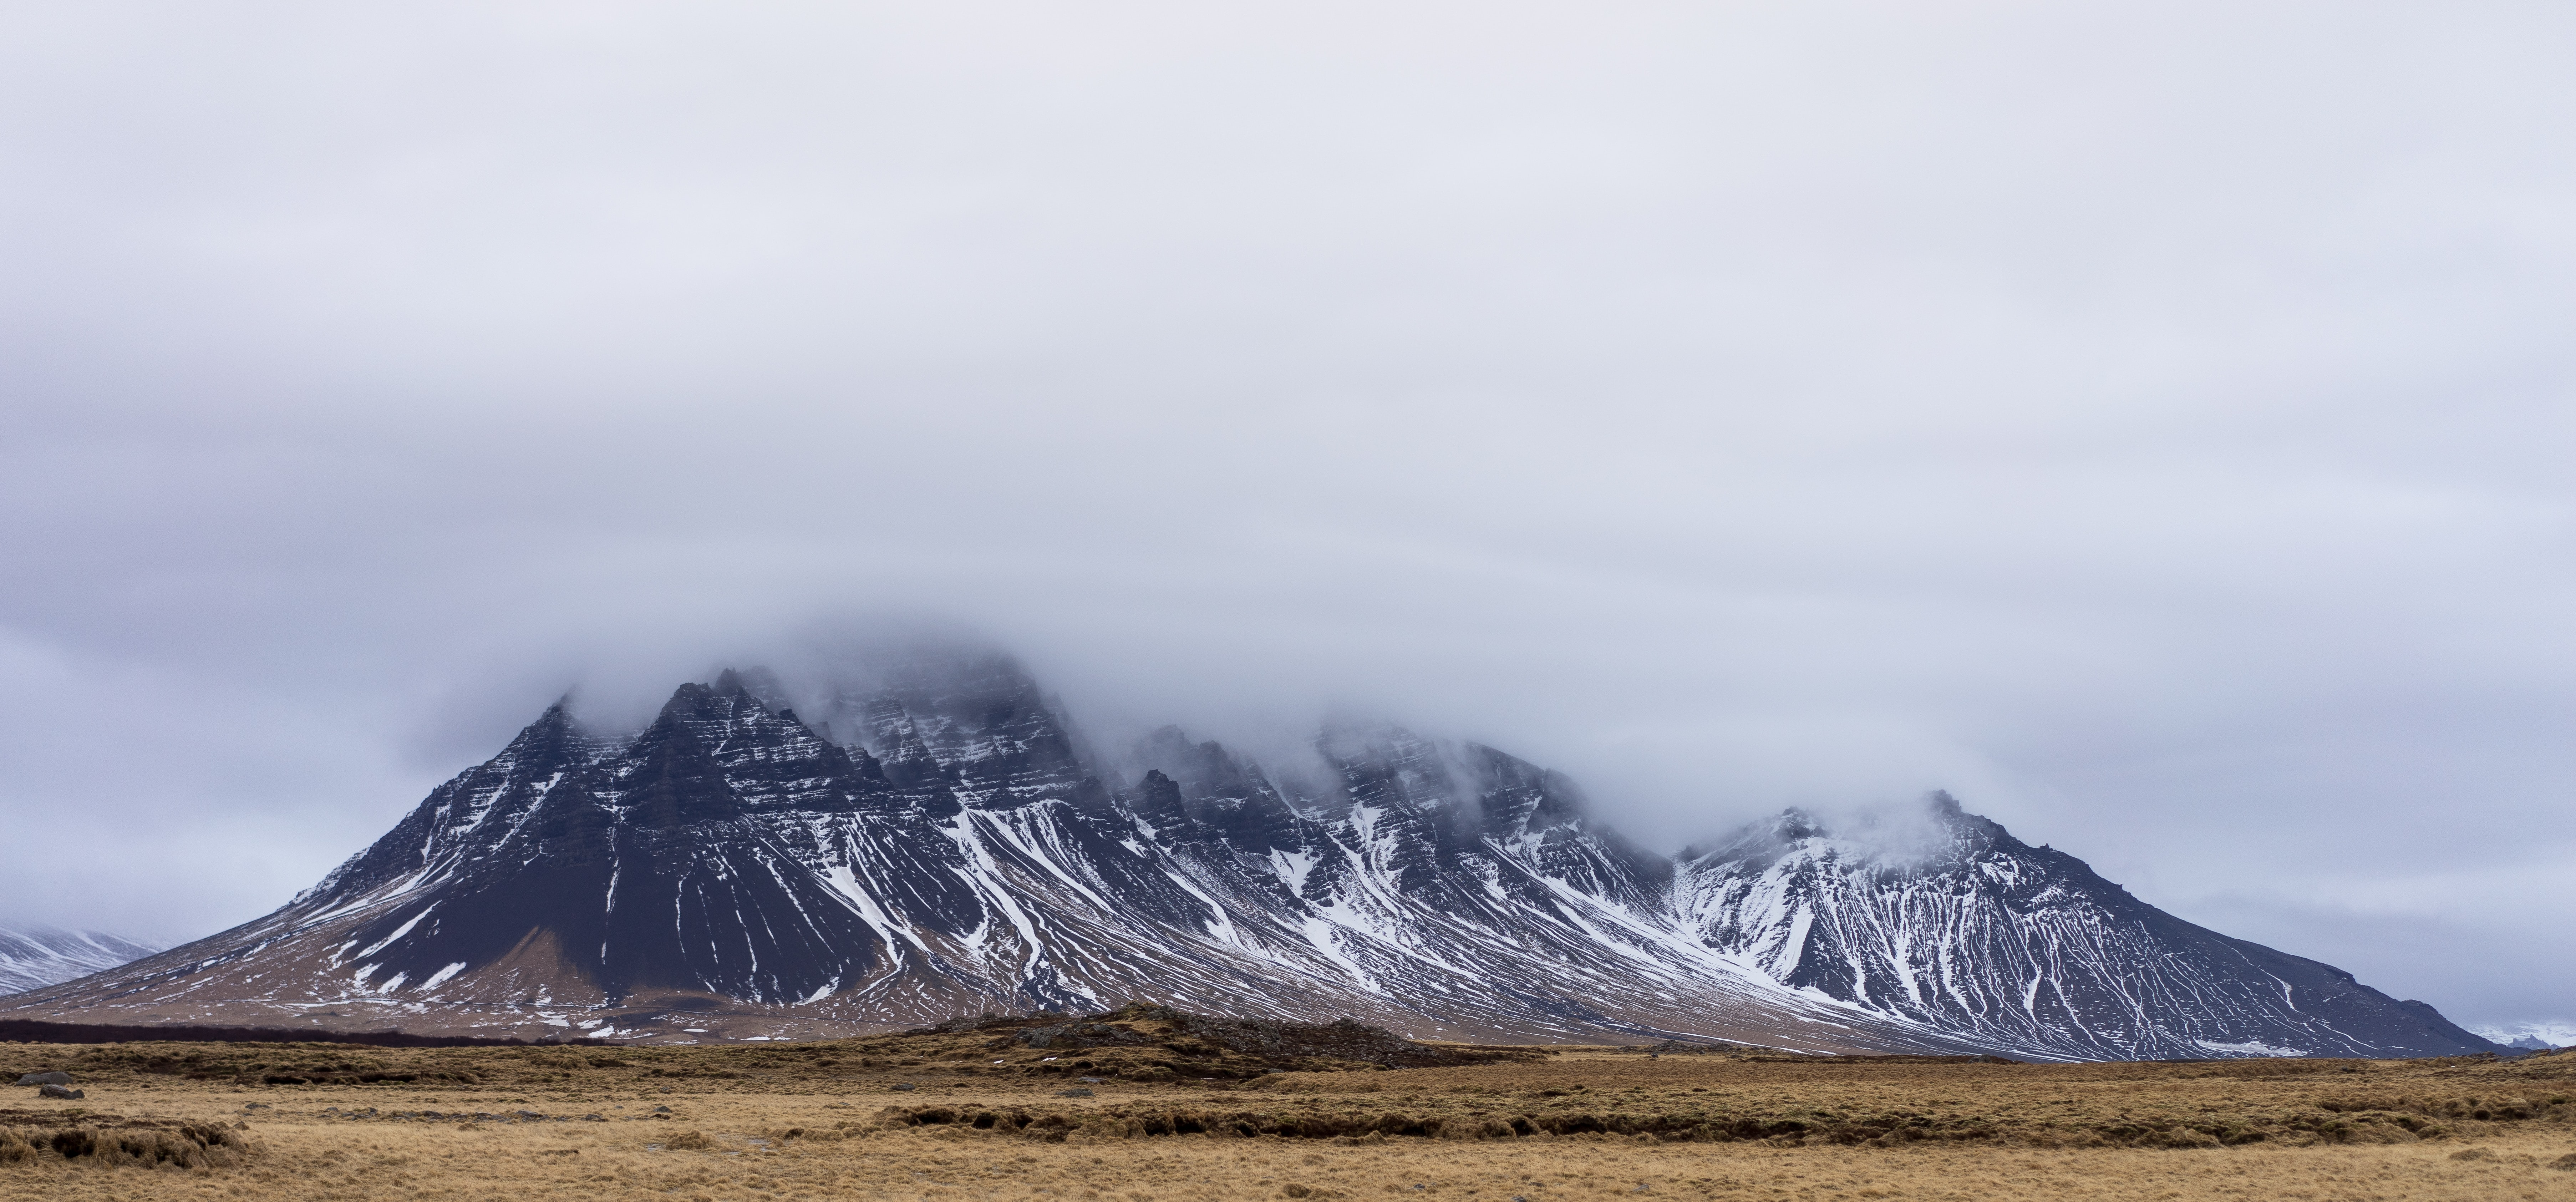 A dark granite mountain shrouded in dense mist